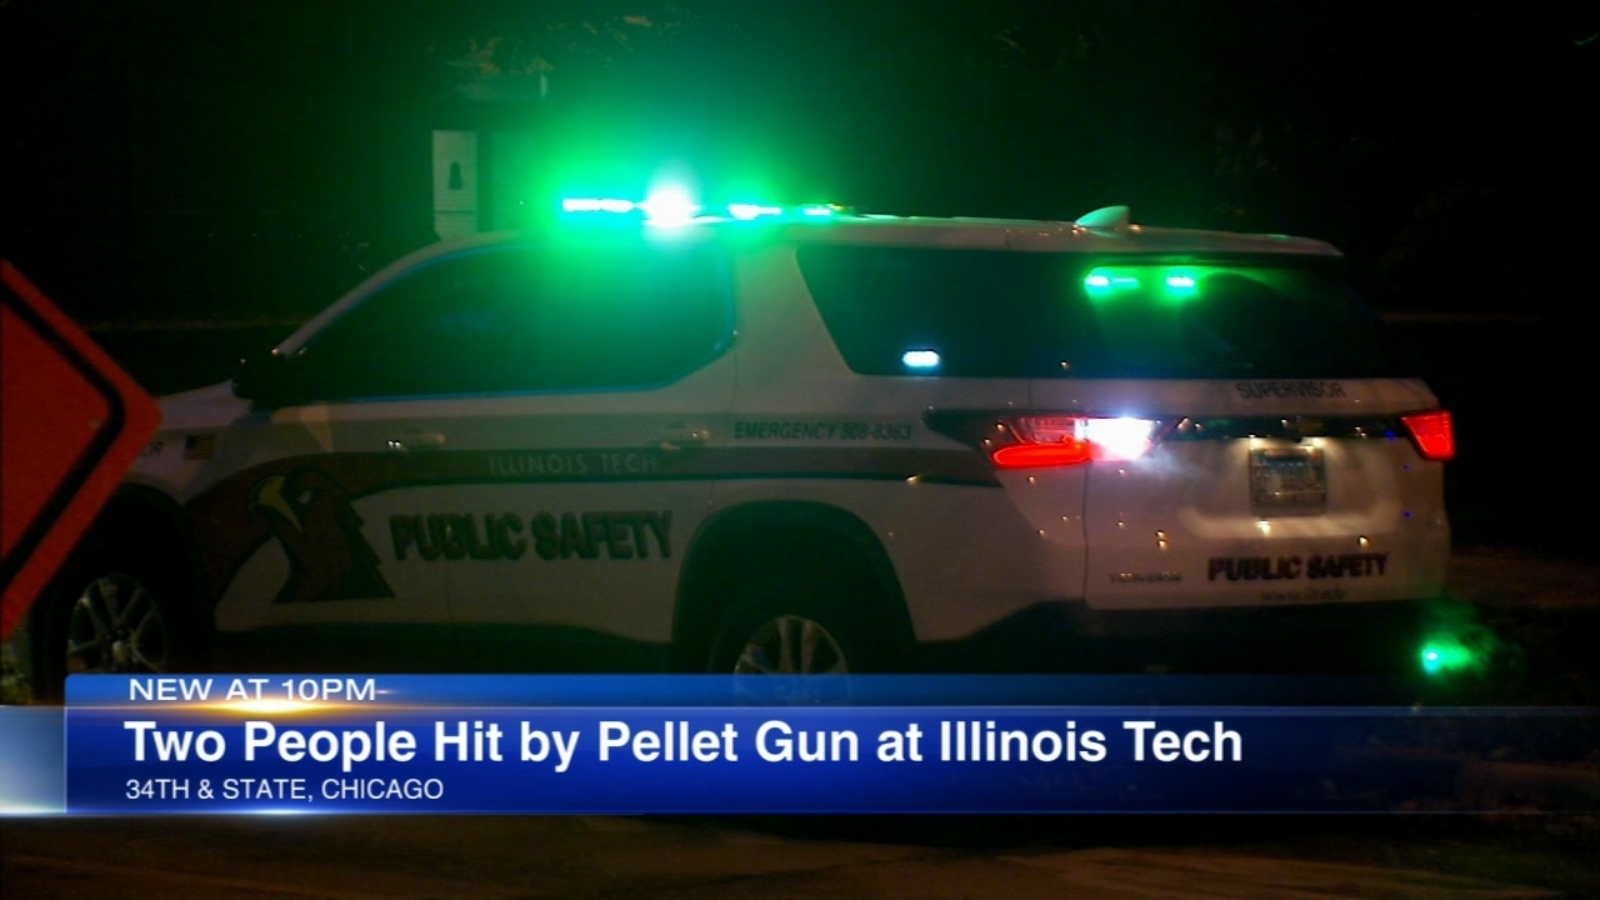 2 hurt in drive-by pellet gun shooting near Illinois Institute of Technology